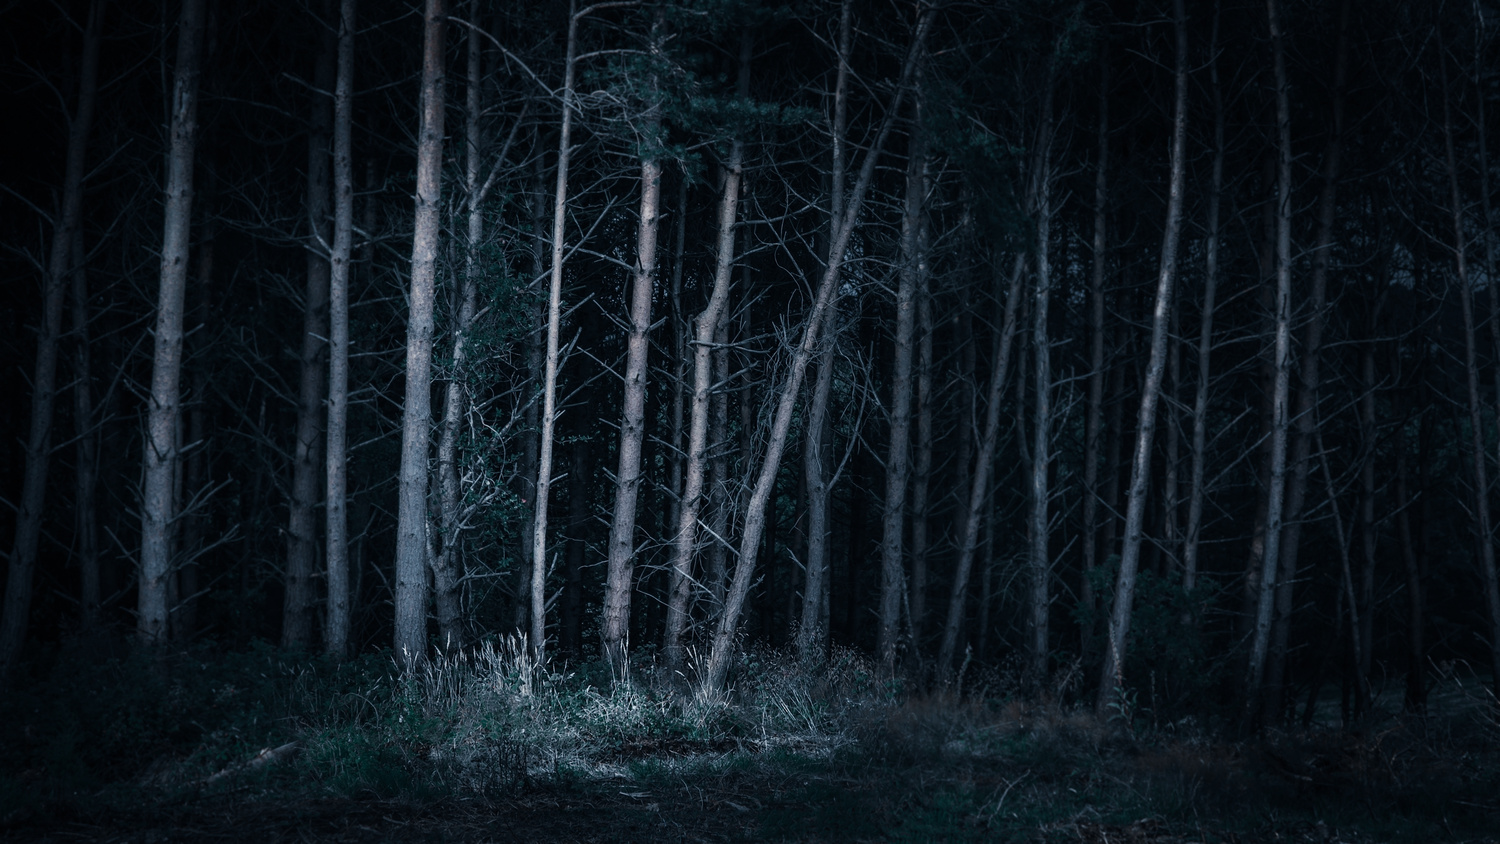 Dark Forrest by Keith Newman